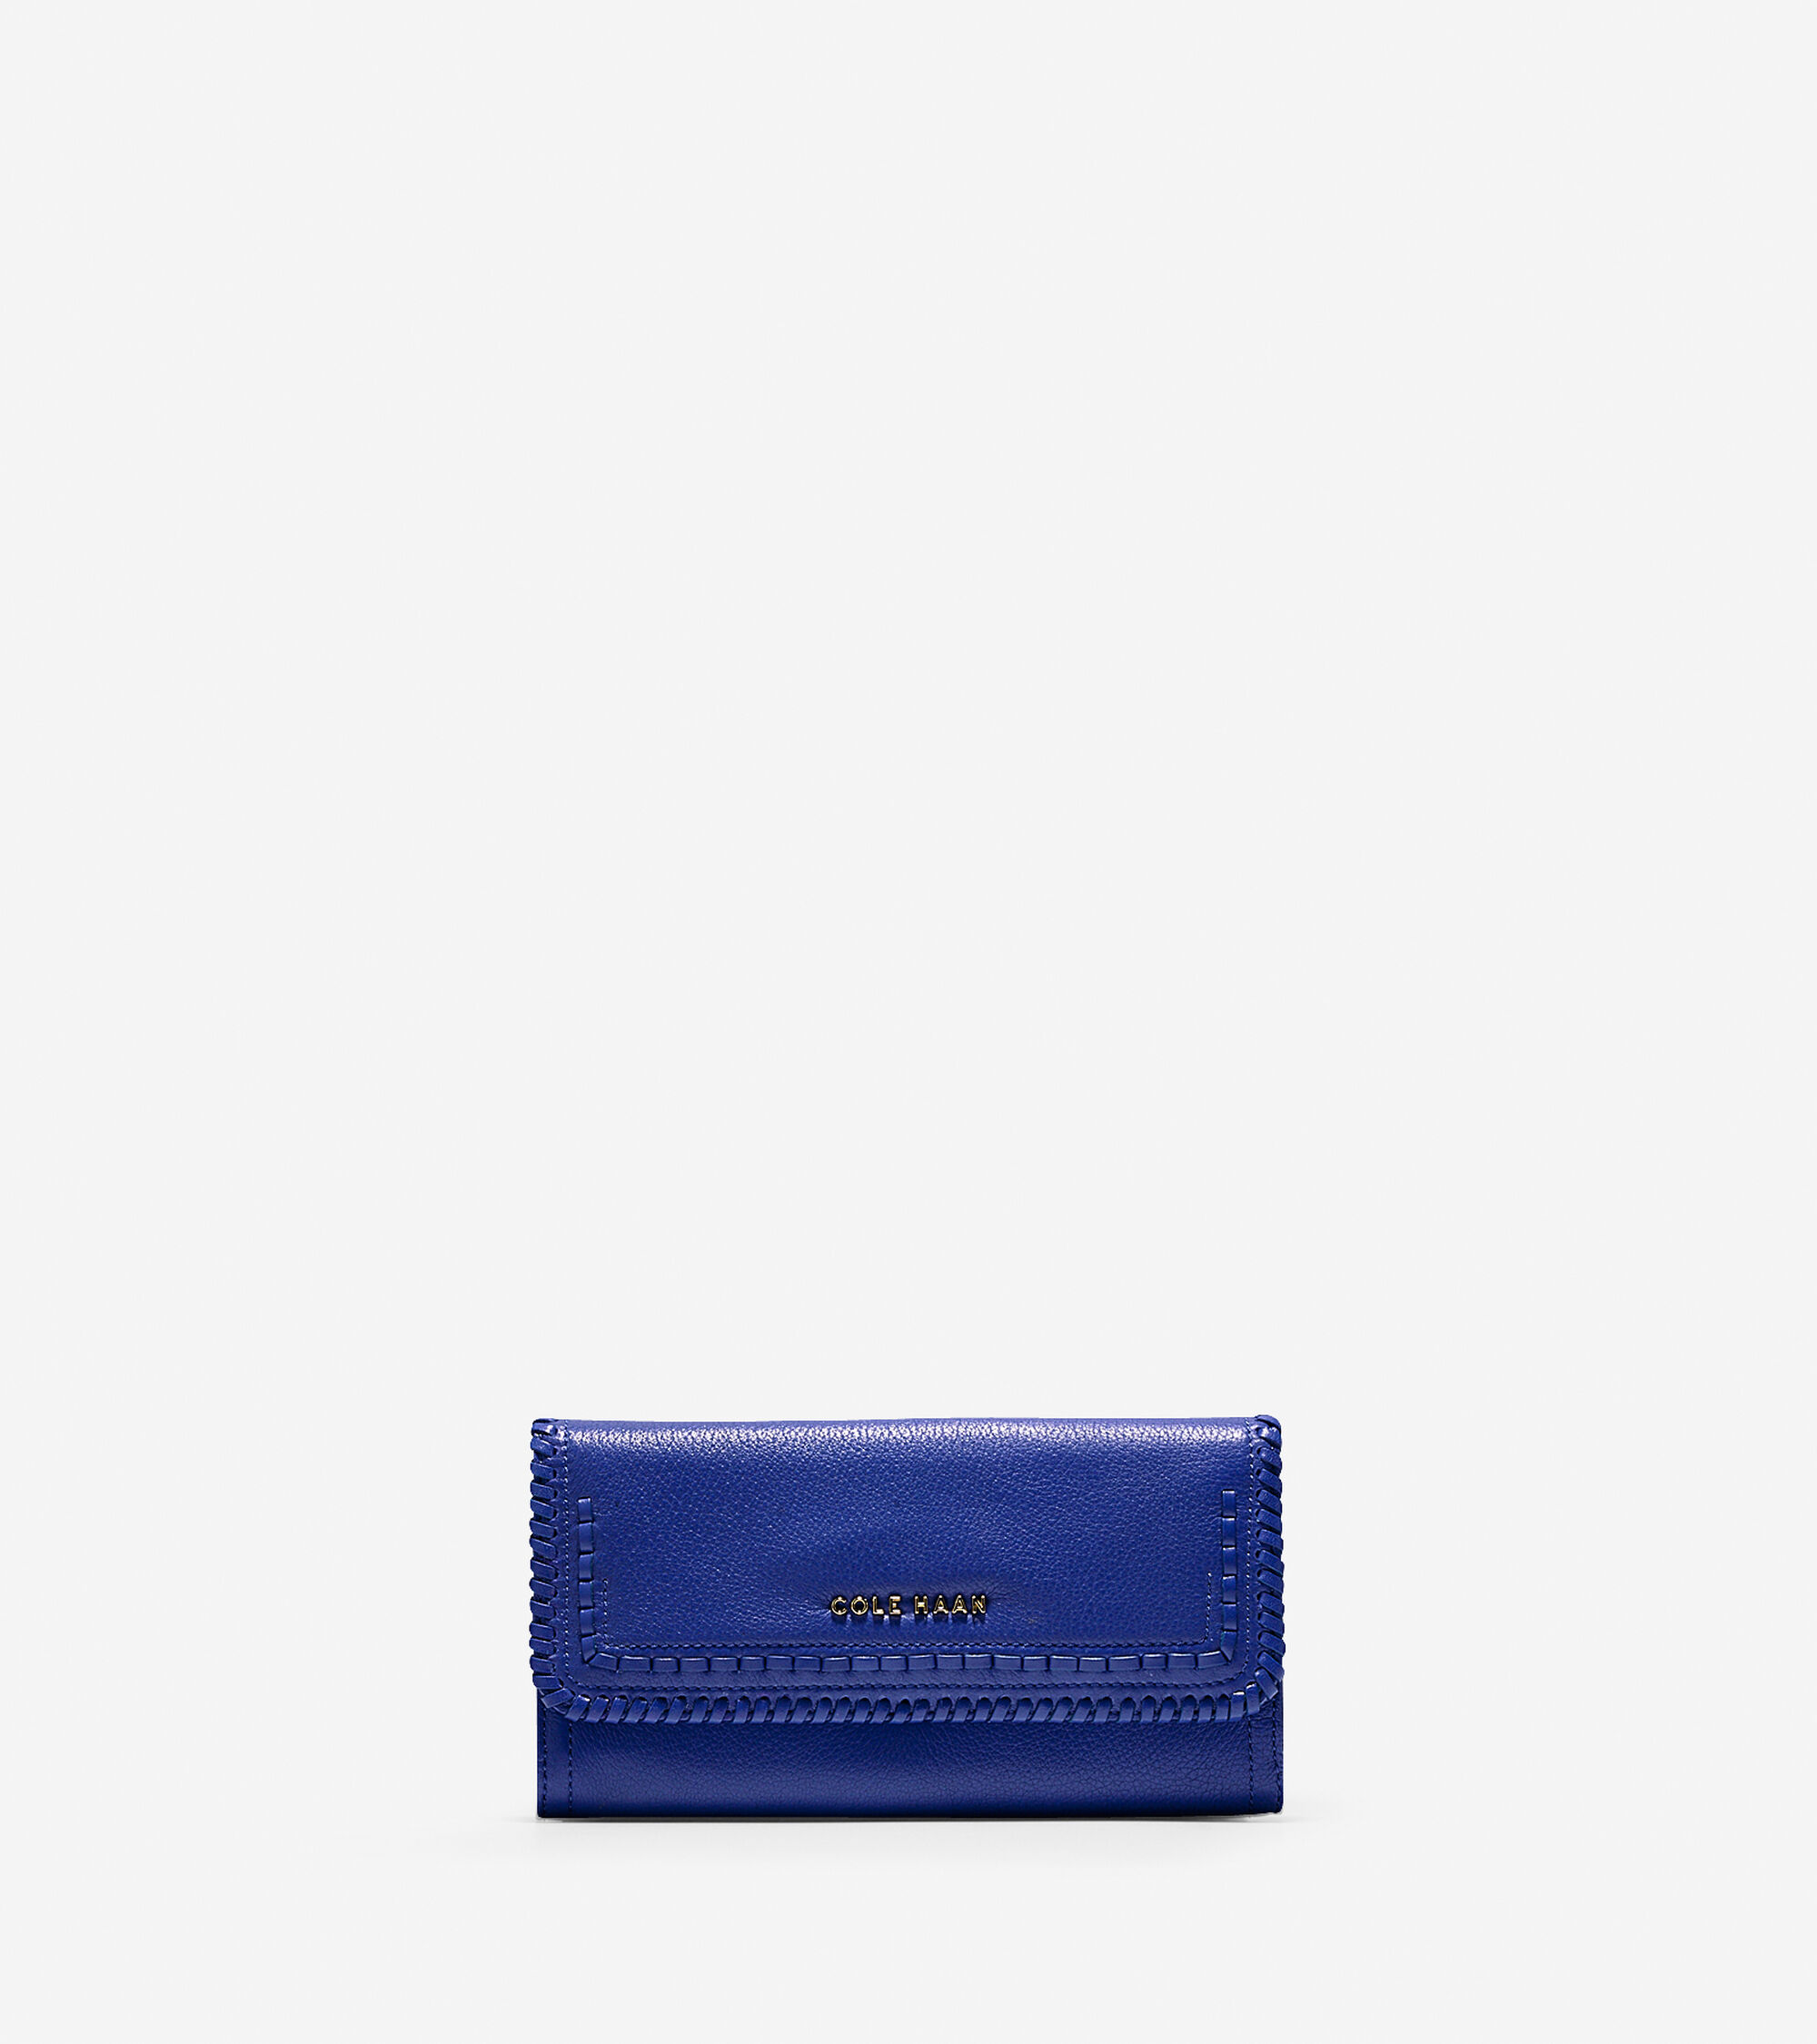 Accessories > Nickson Large Flap Wallet